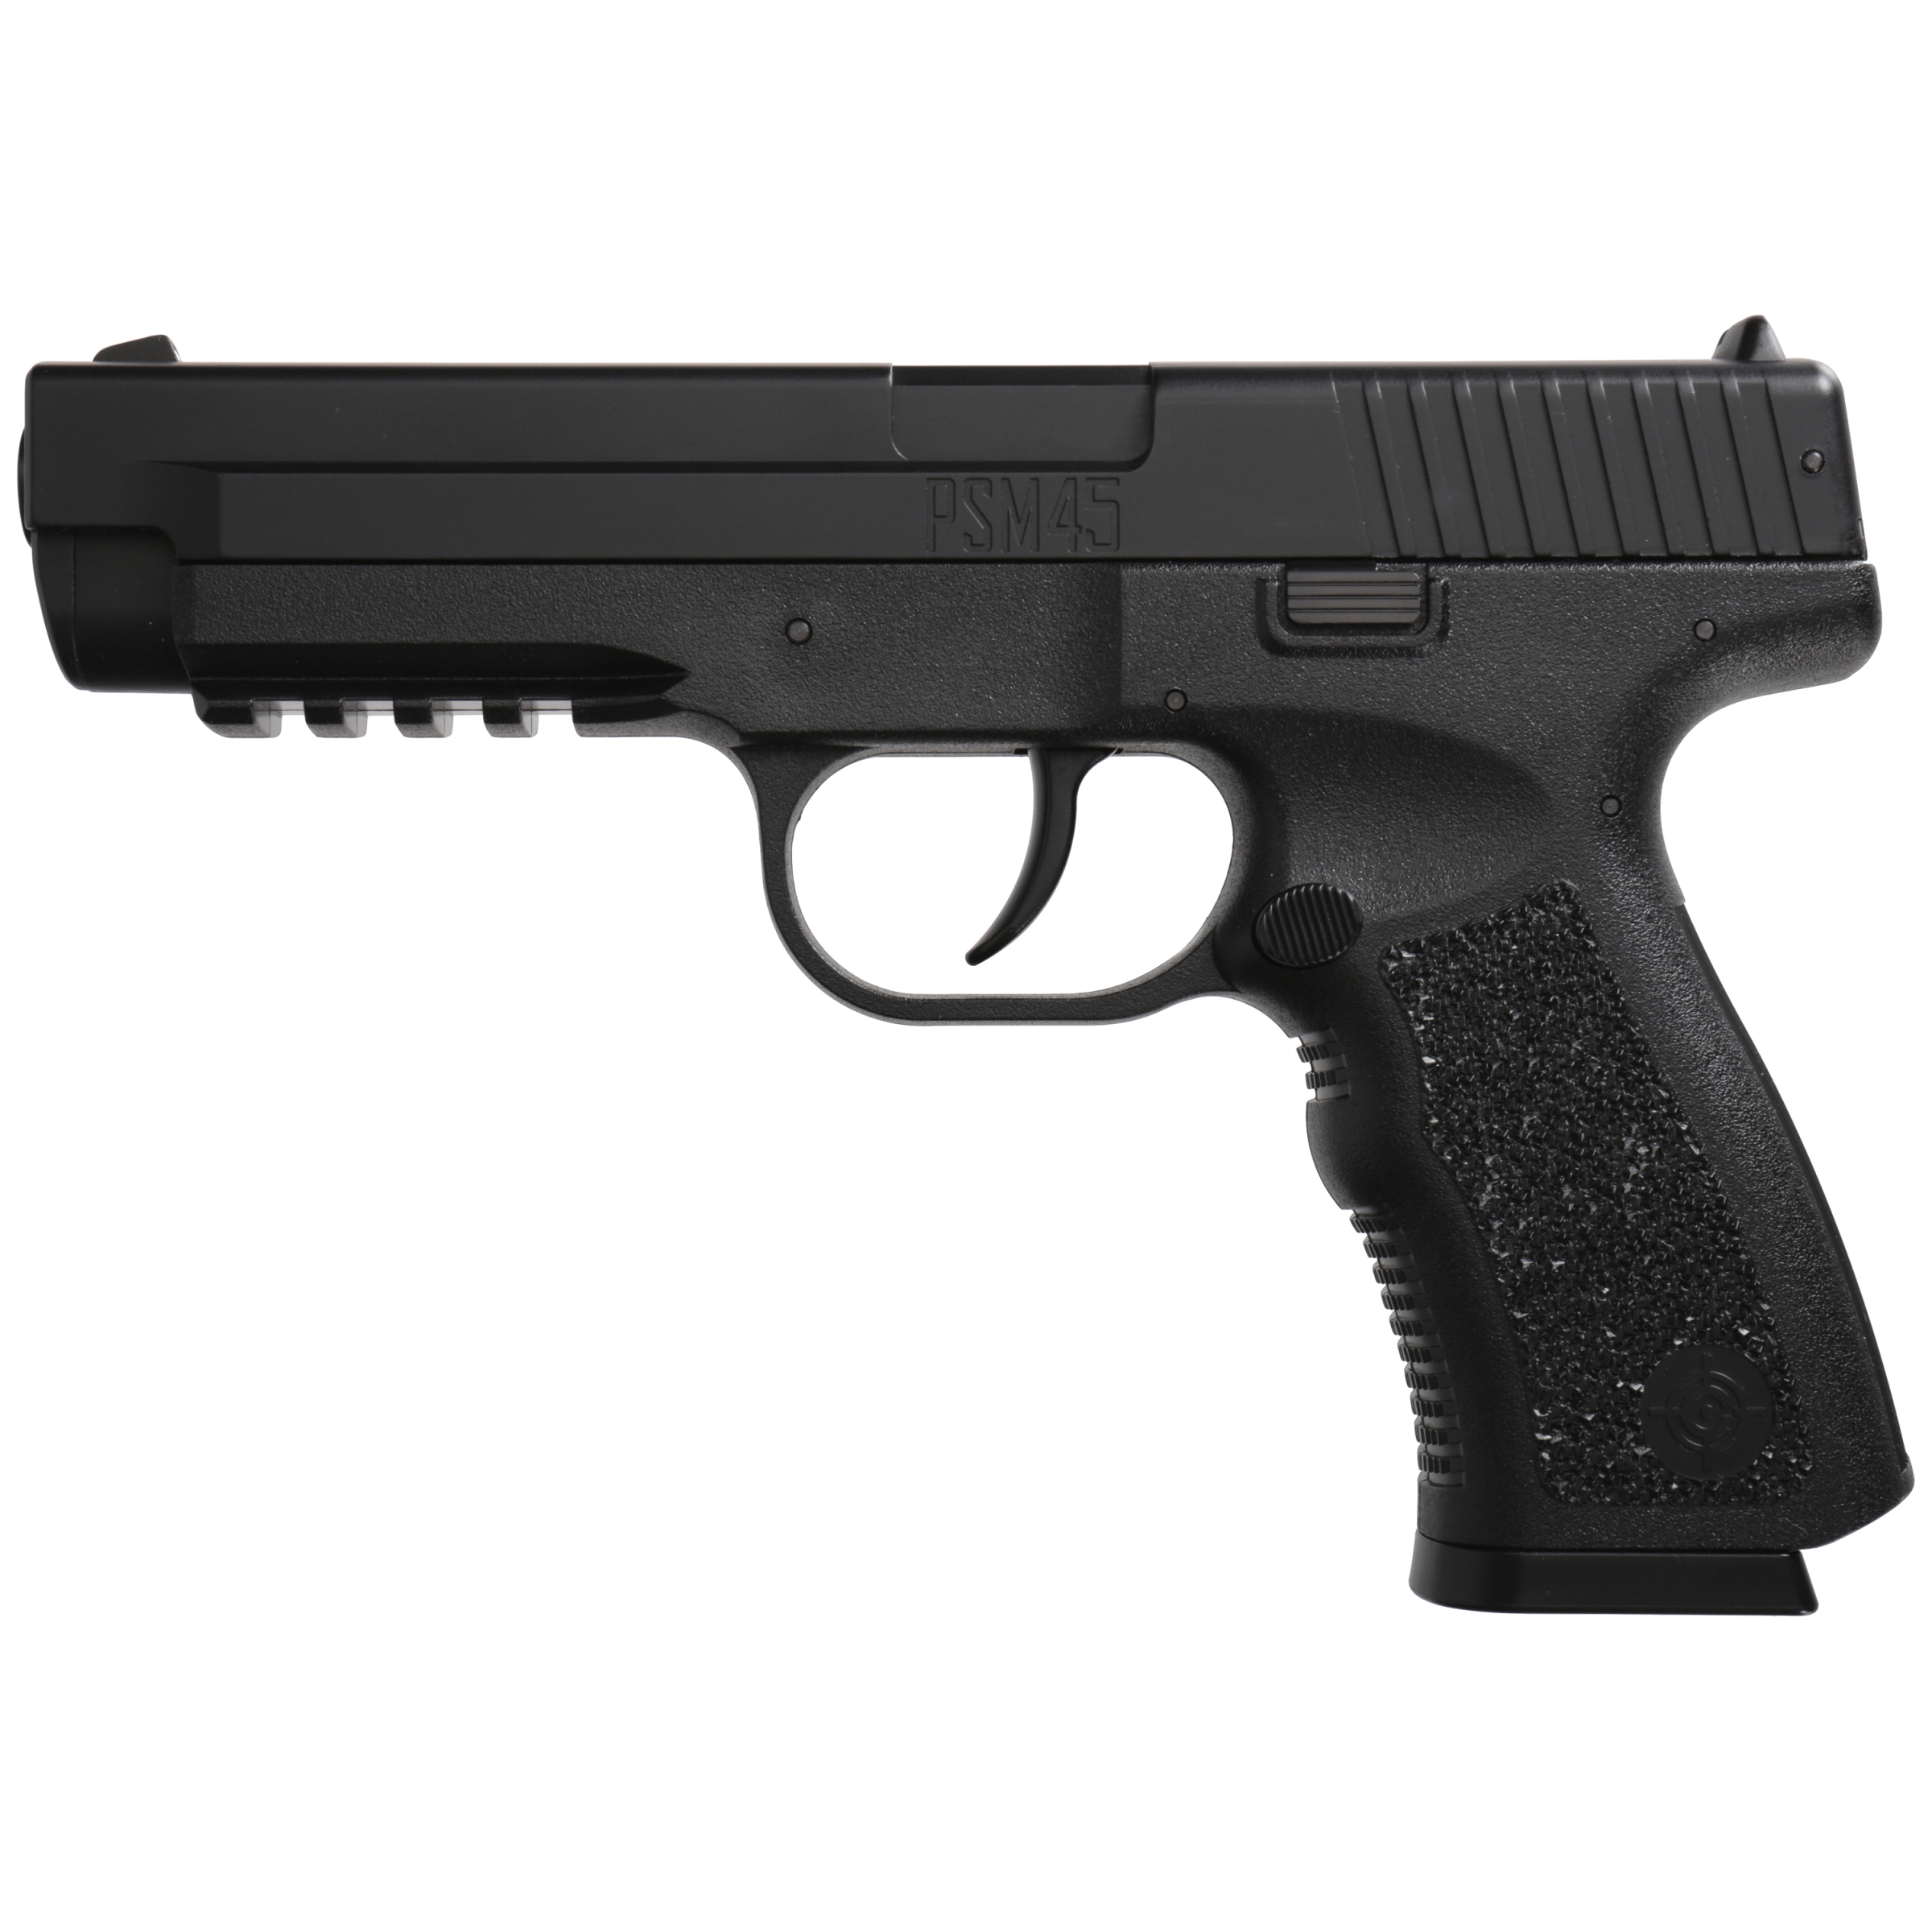 Crosman PSM45 Spring Power SingleShot Pistol PSM45 by Crosman Corporation